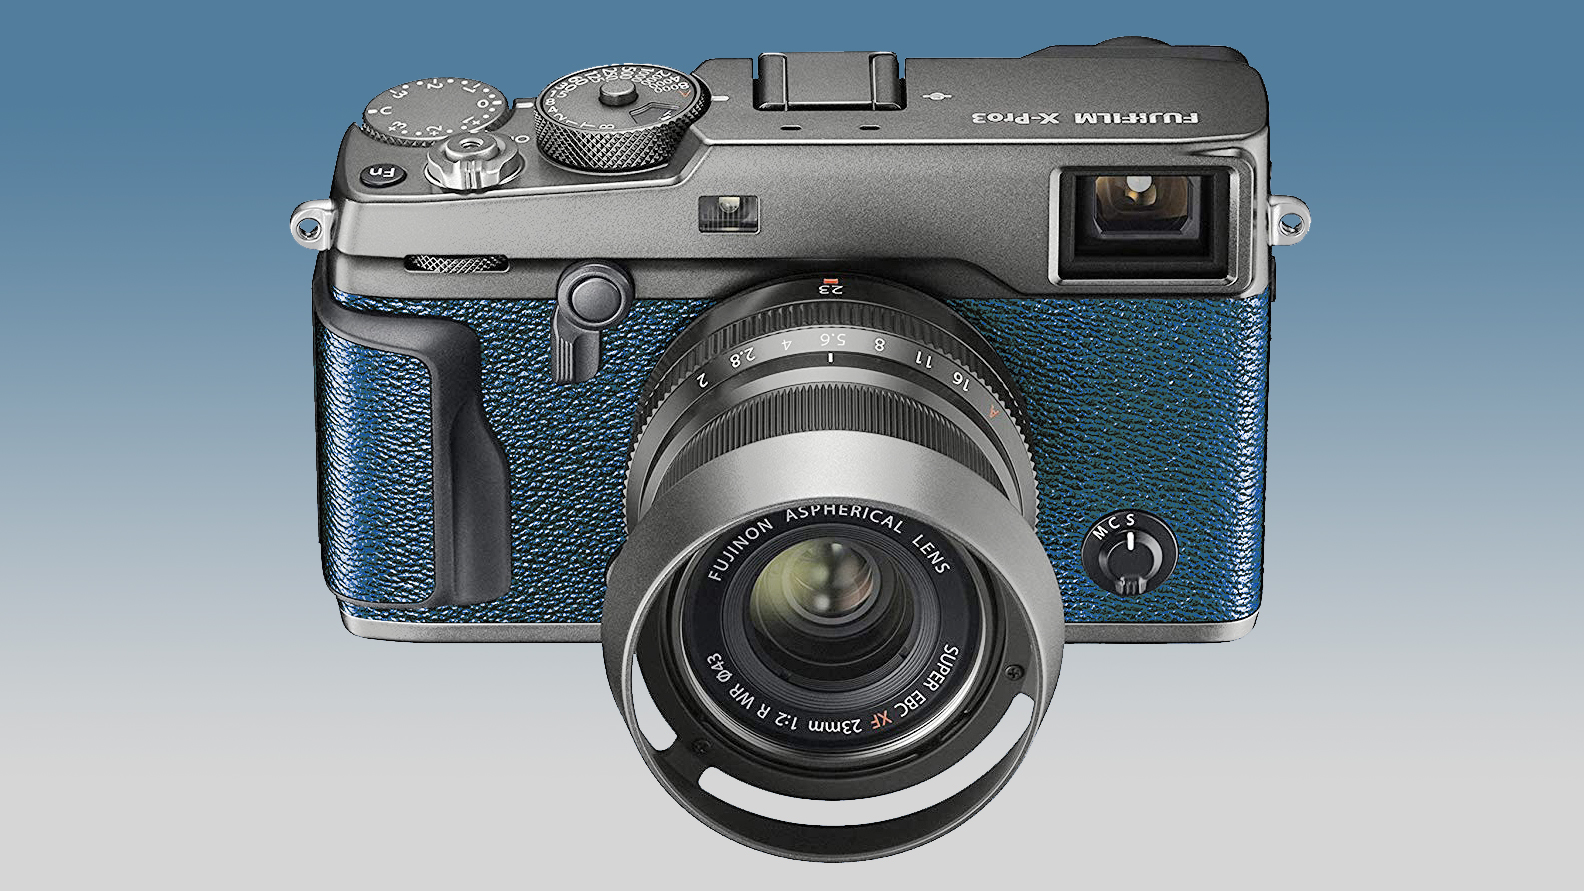 Fujifilm X-Pro3 to get new color, but will it match the